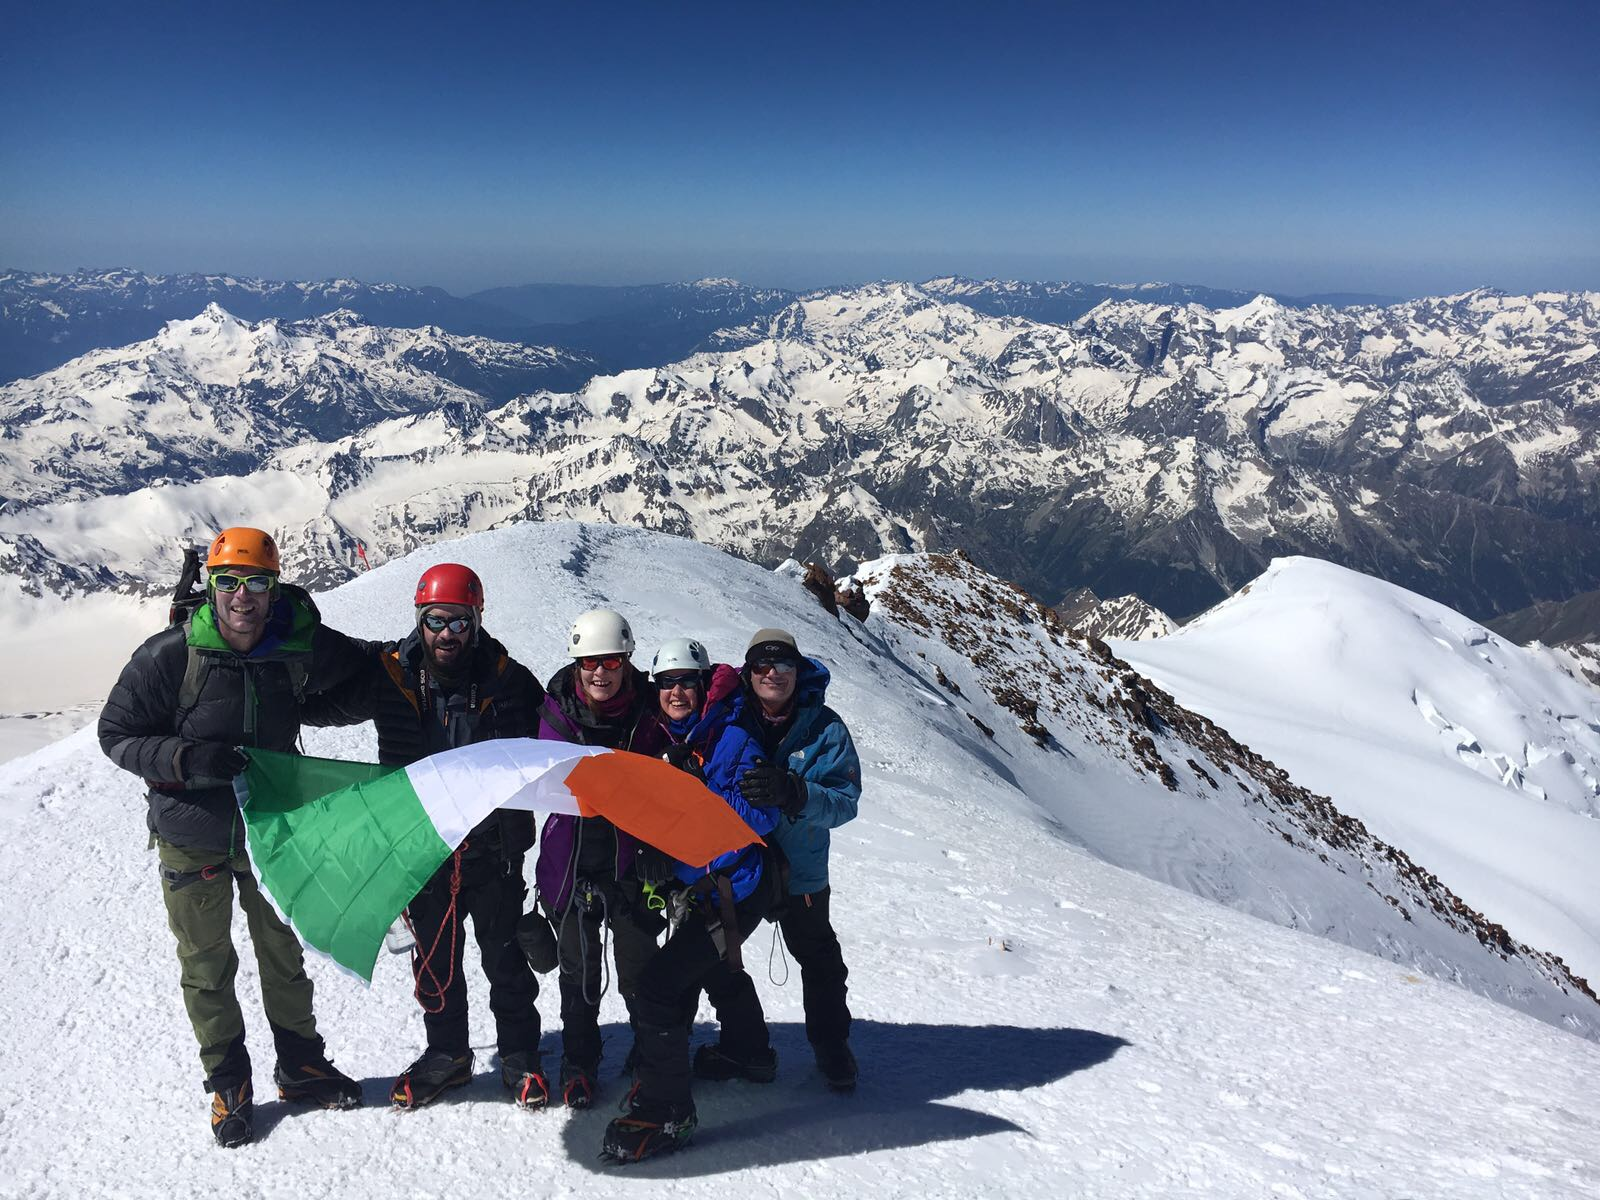 Climbed Elbrus - so what next